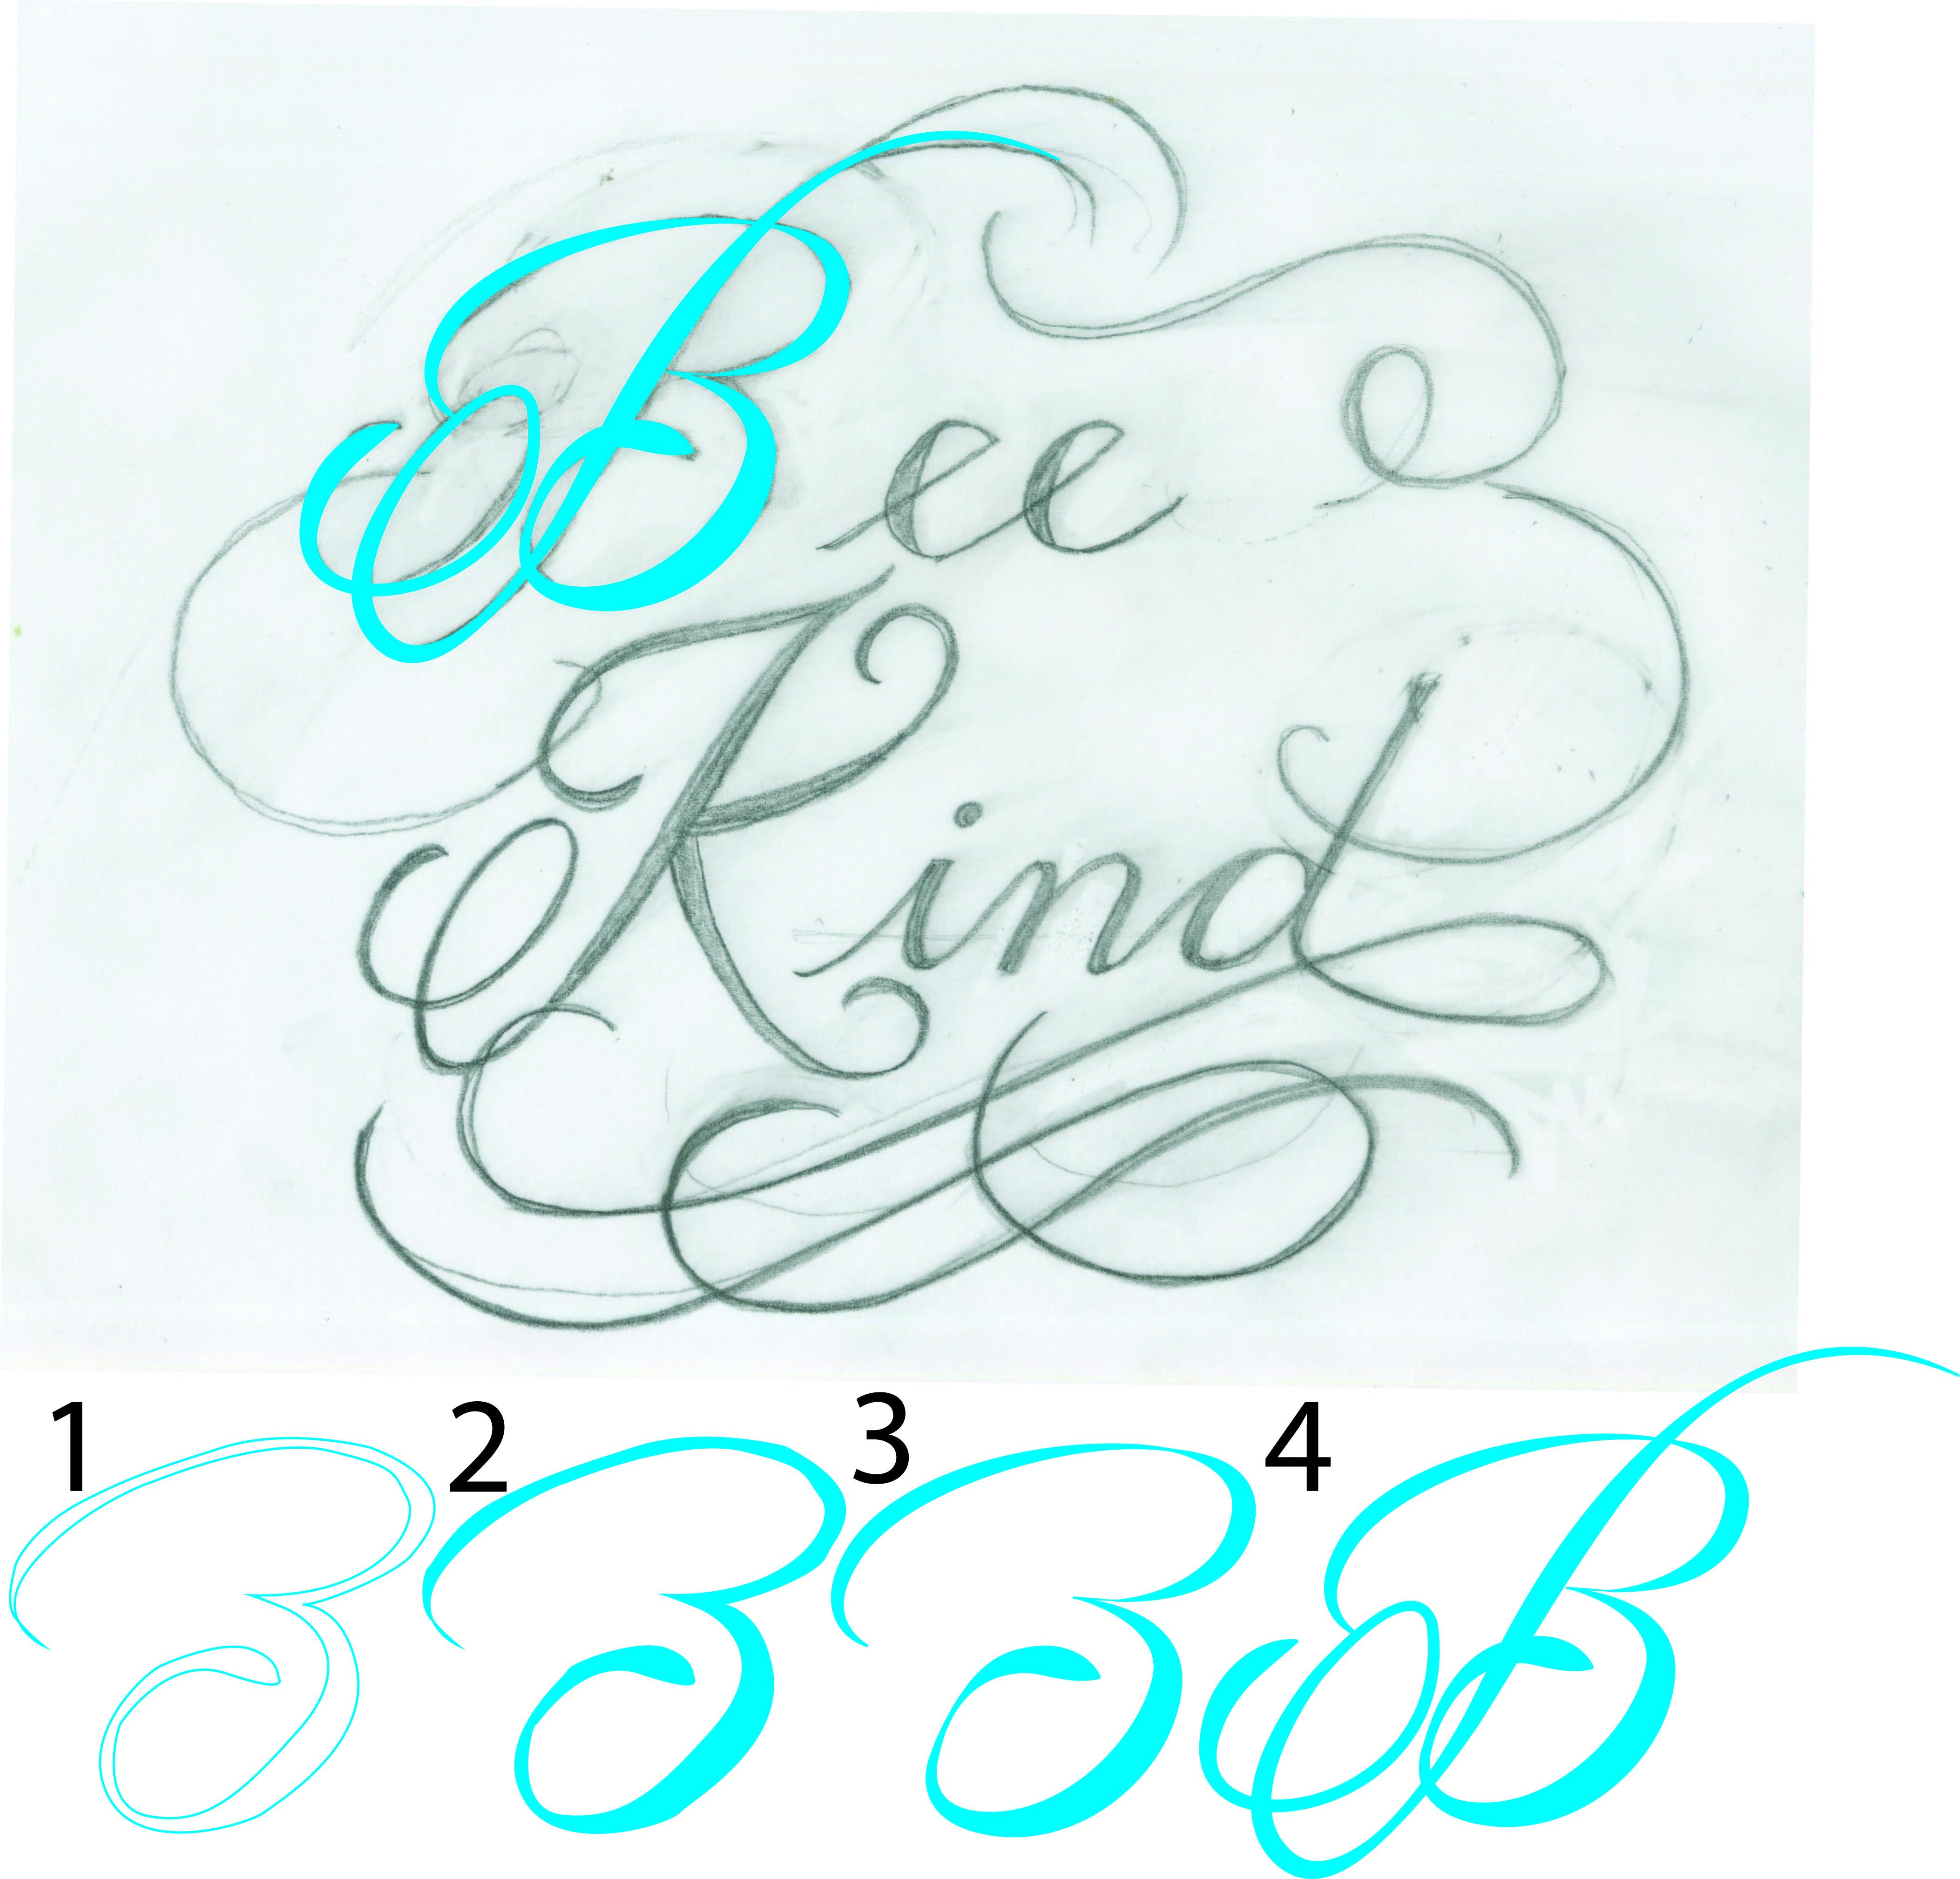 Bee Kind - image 2 - student project